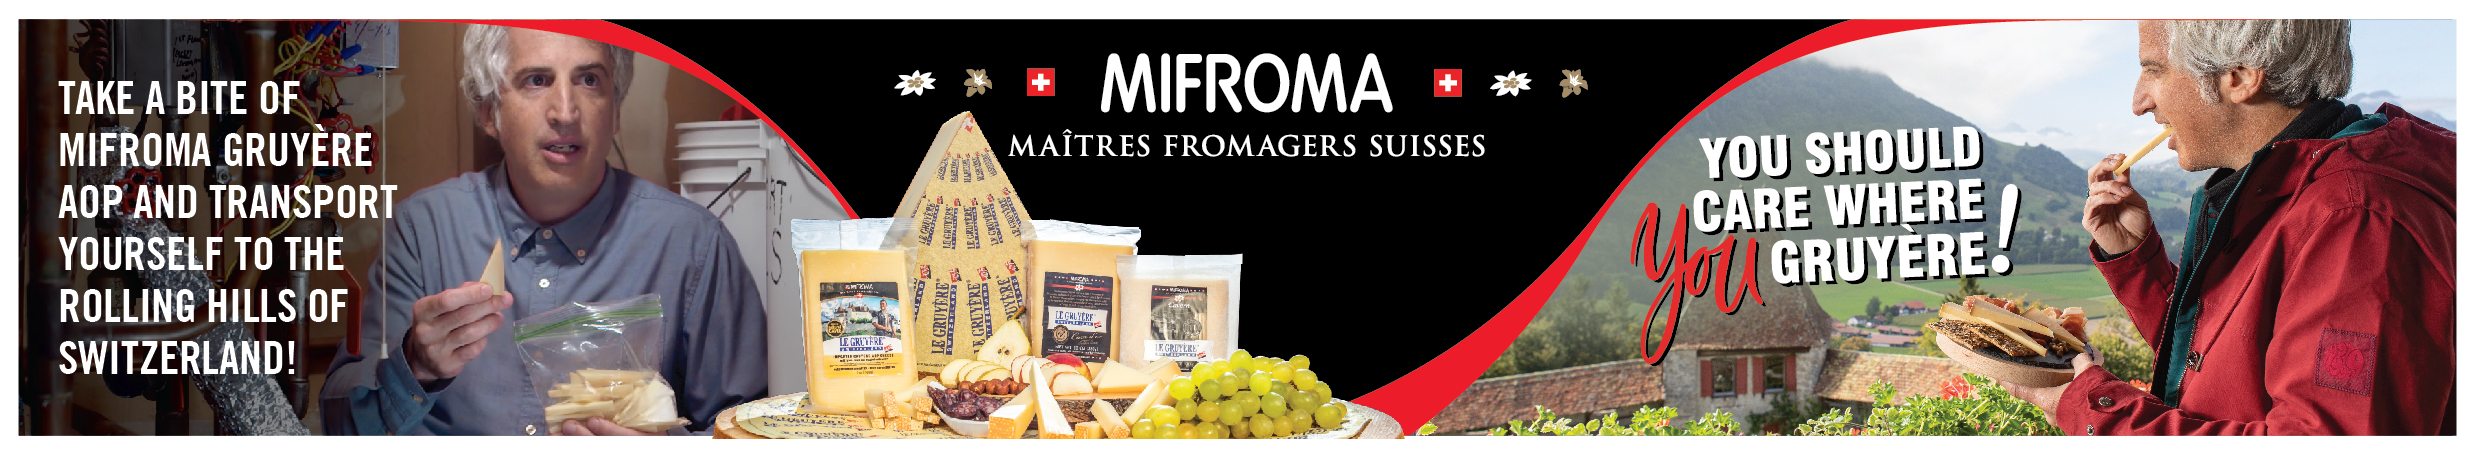 Mifroma - Take a bite of Mifroma Gruyere aop and transport yourself to the rolling hills of Switzerland